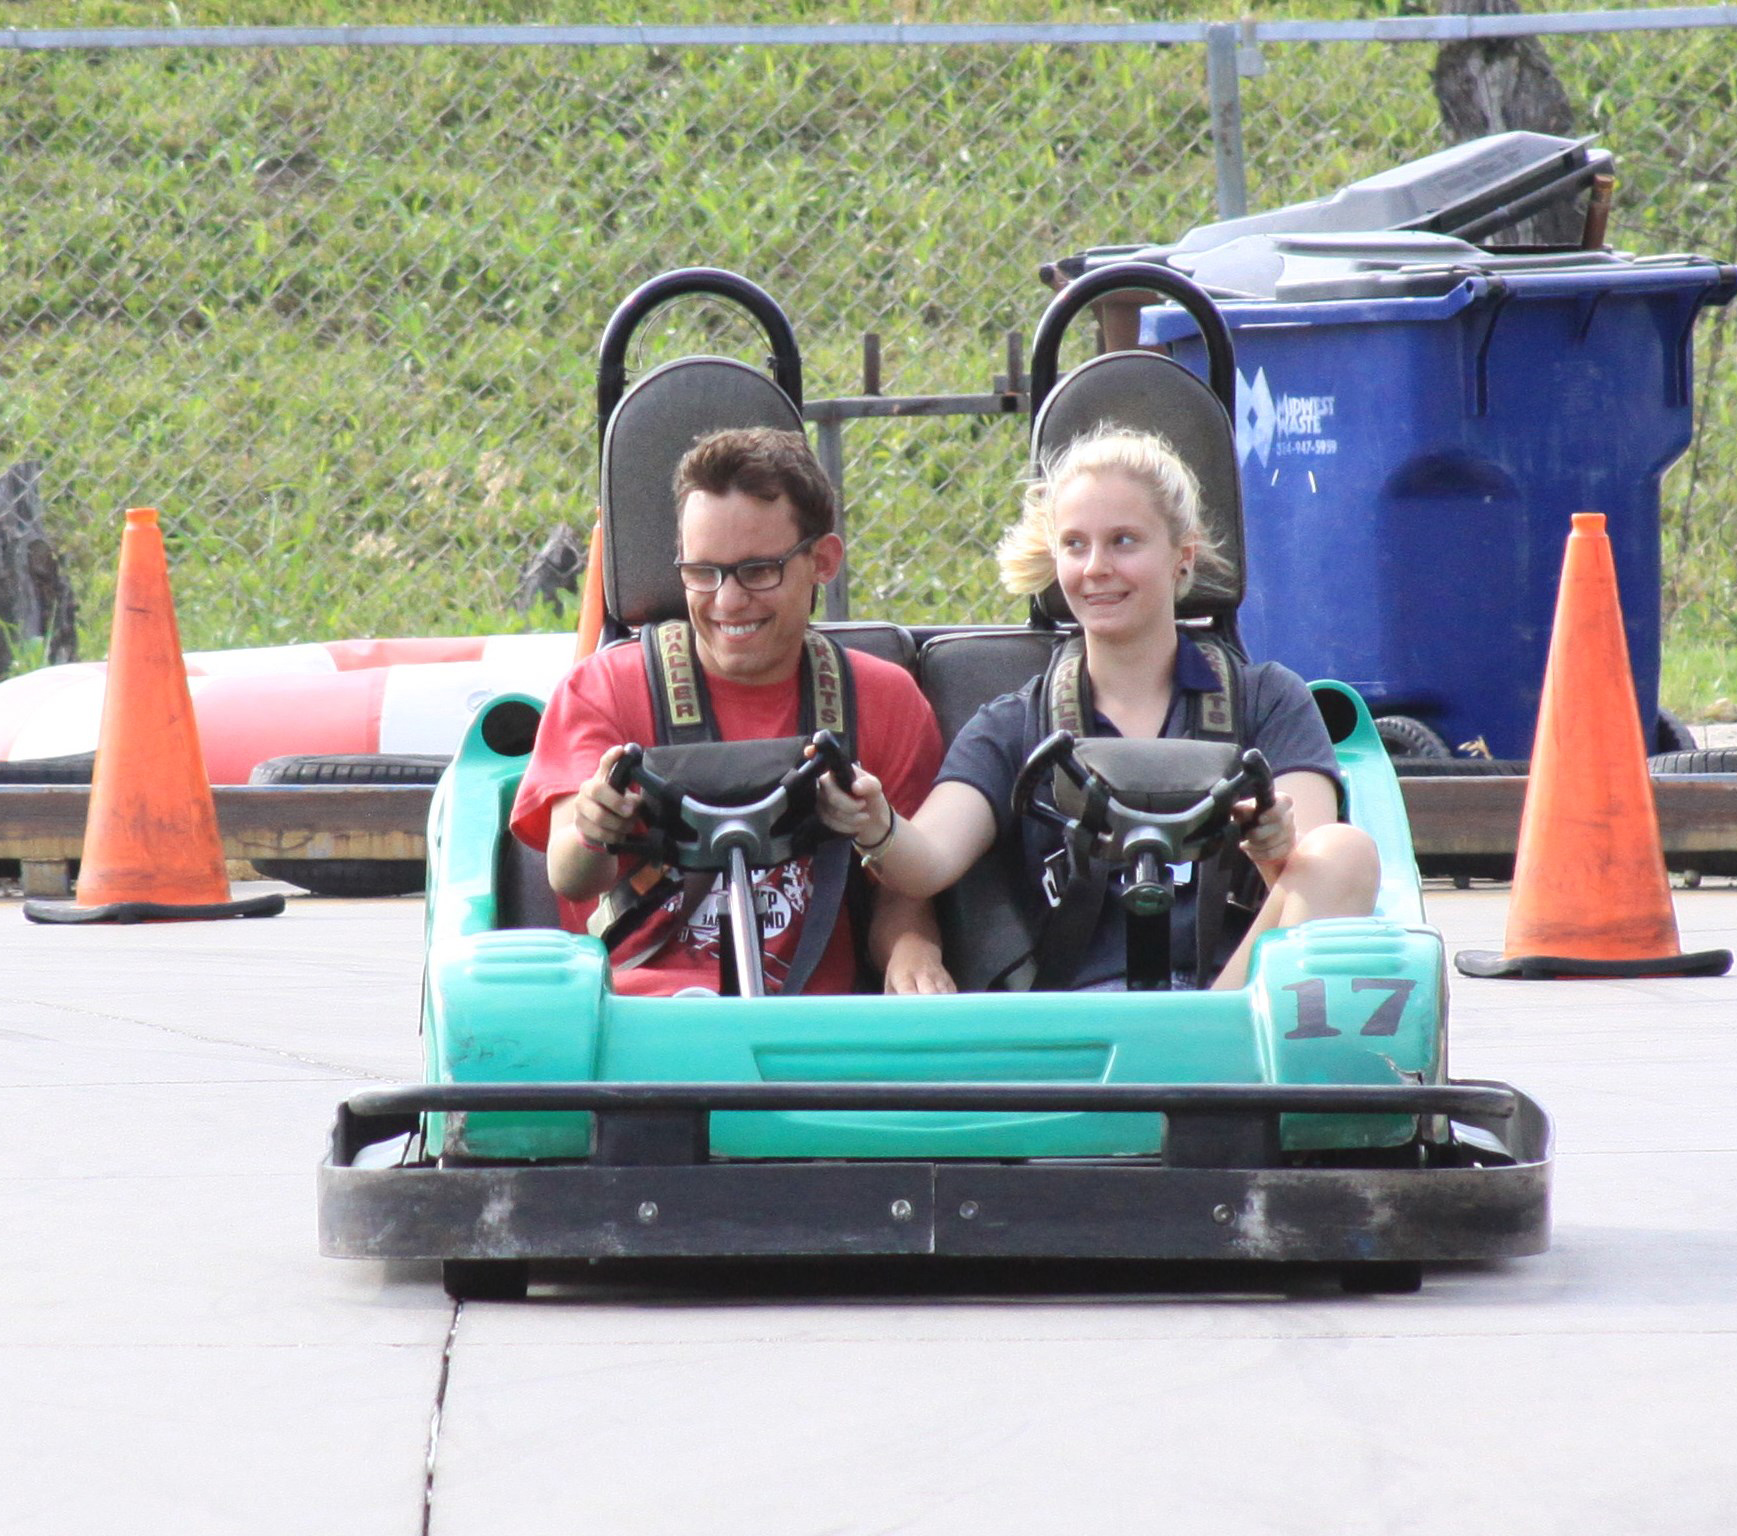 Justin Excitedly Drives A Go Cart Around The Track At Swing Around Fun Time During One Of SOAR's Many Nightly Excursions.